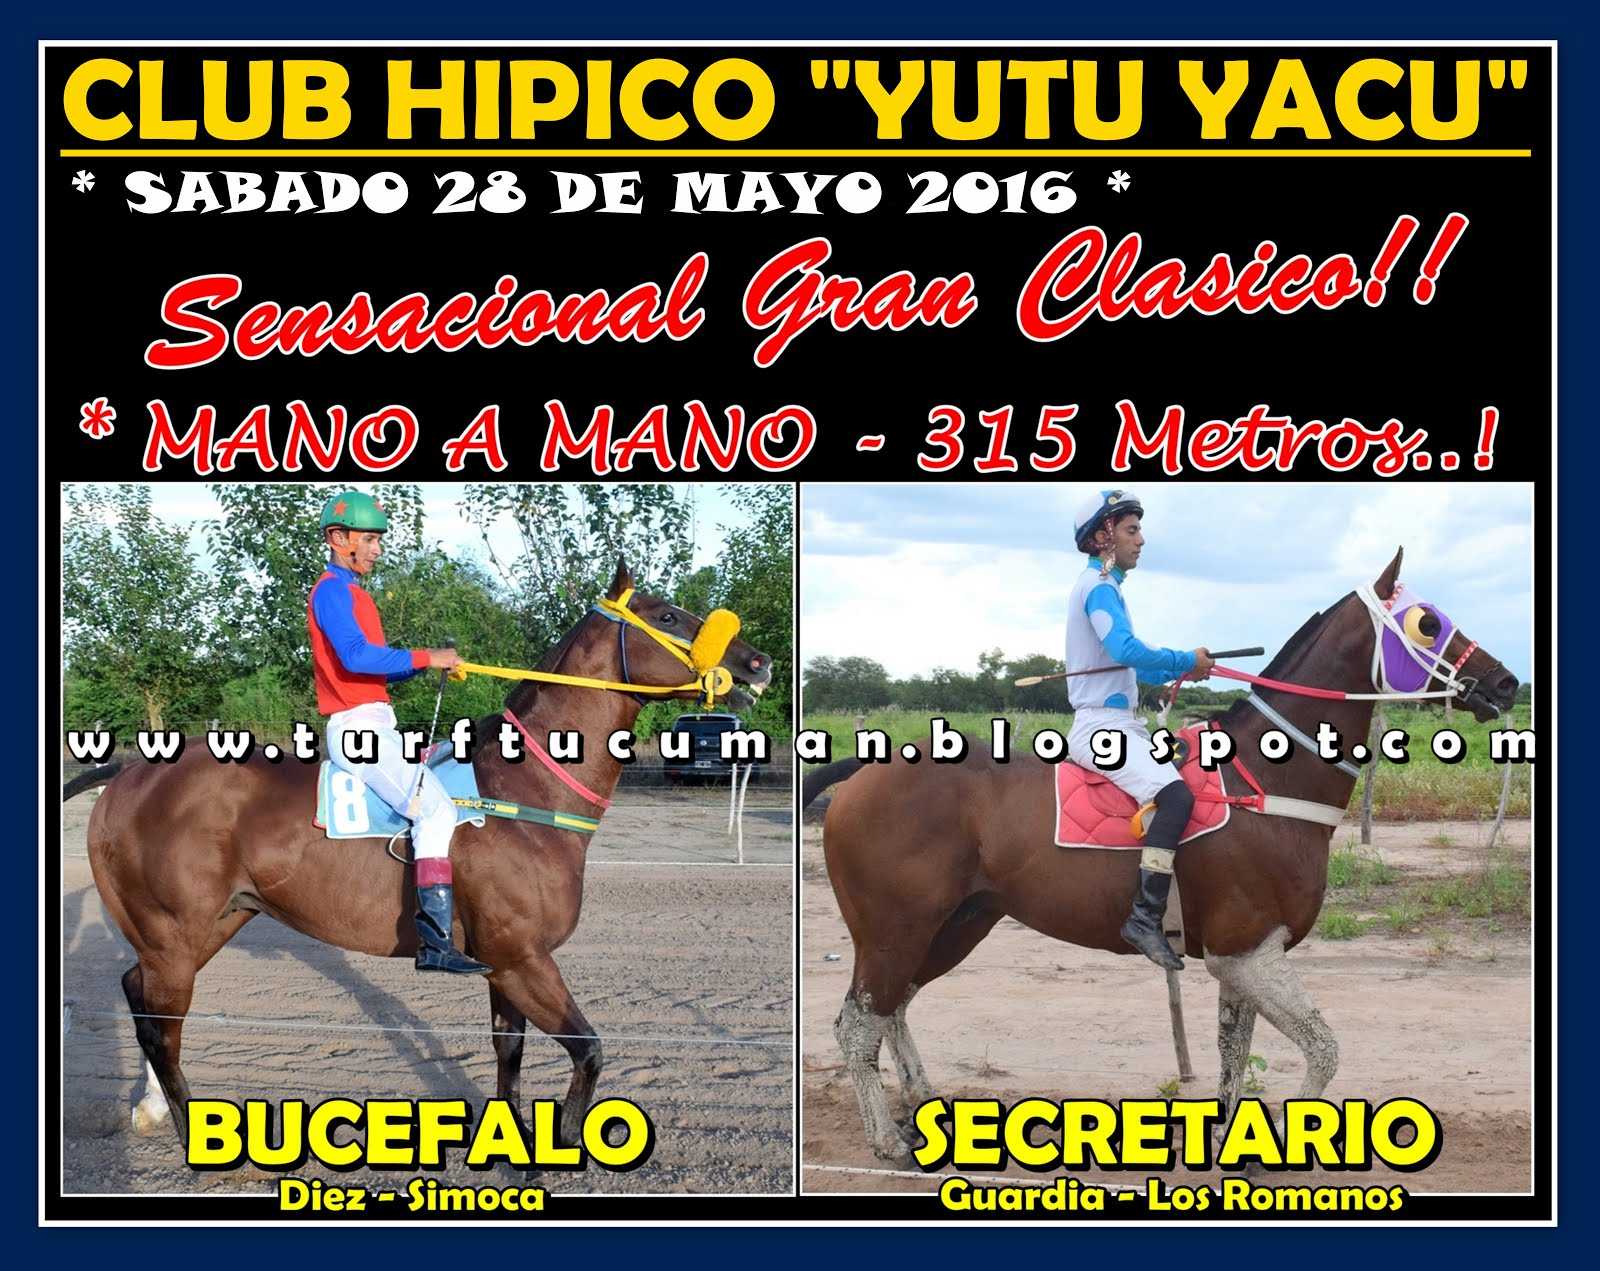 BUCEFALO VS SECRETARIO